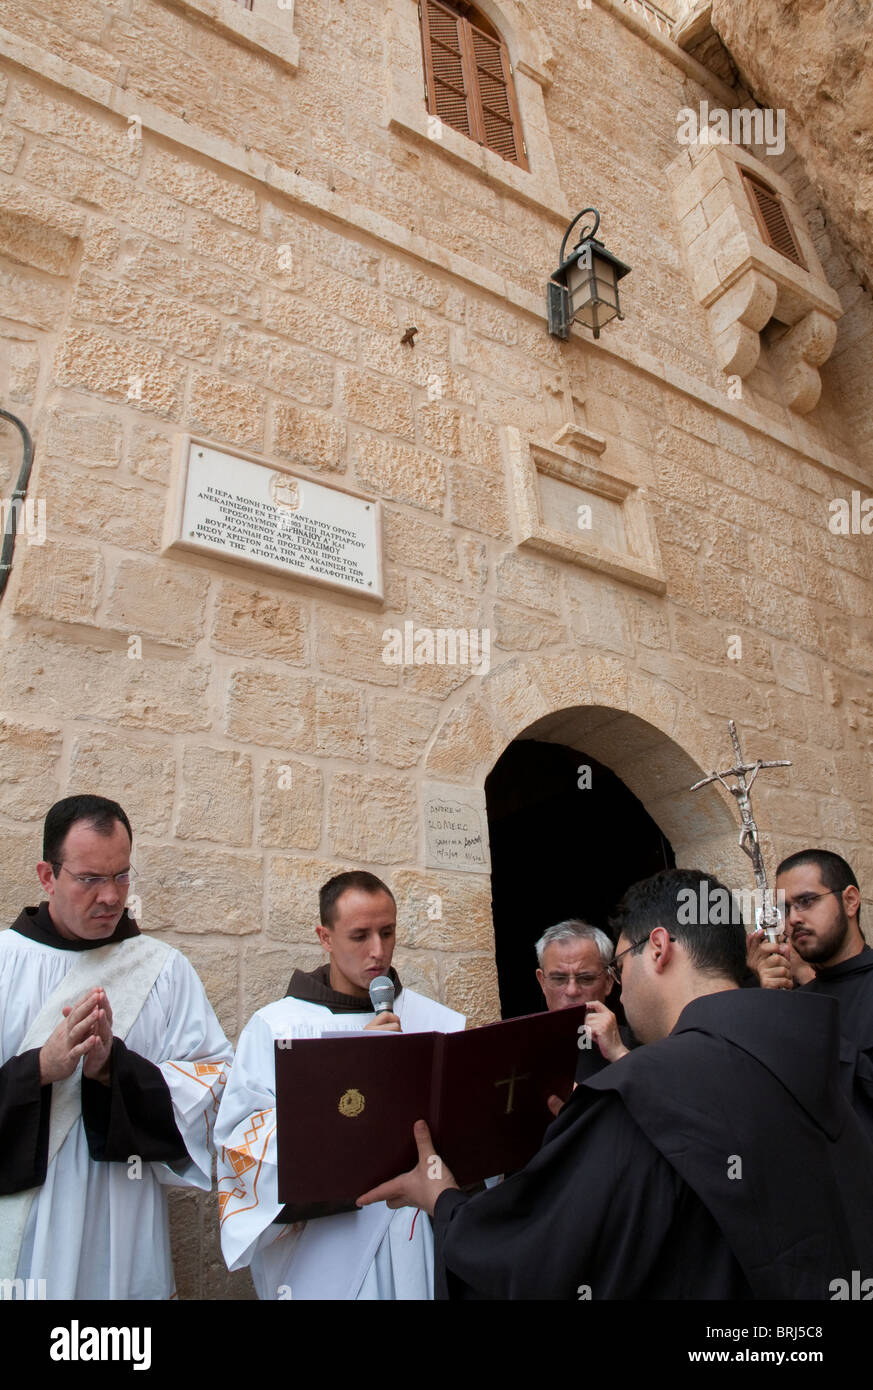 franciscan friars on a procession to the Quarantal monastery in Jericho - Stock Image